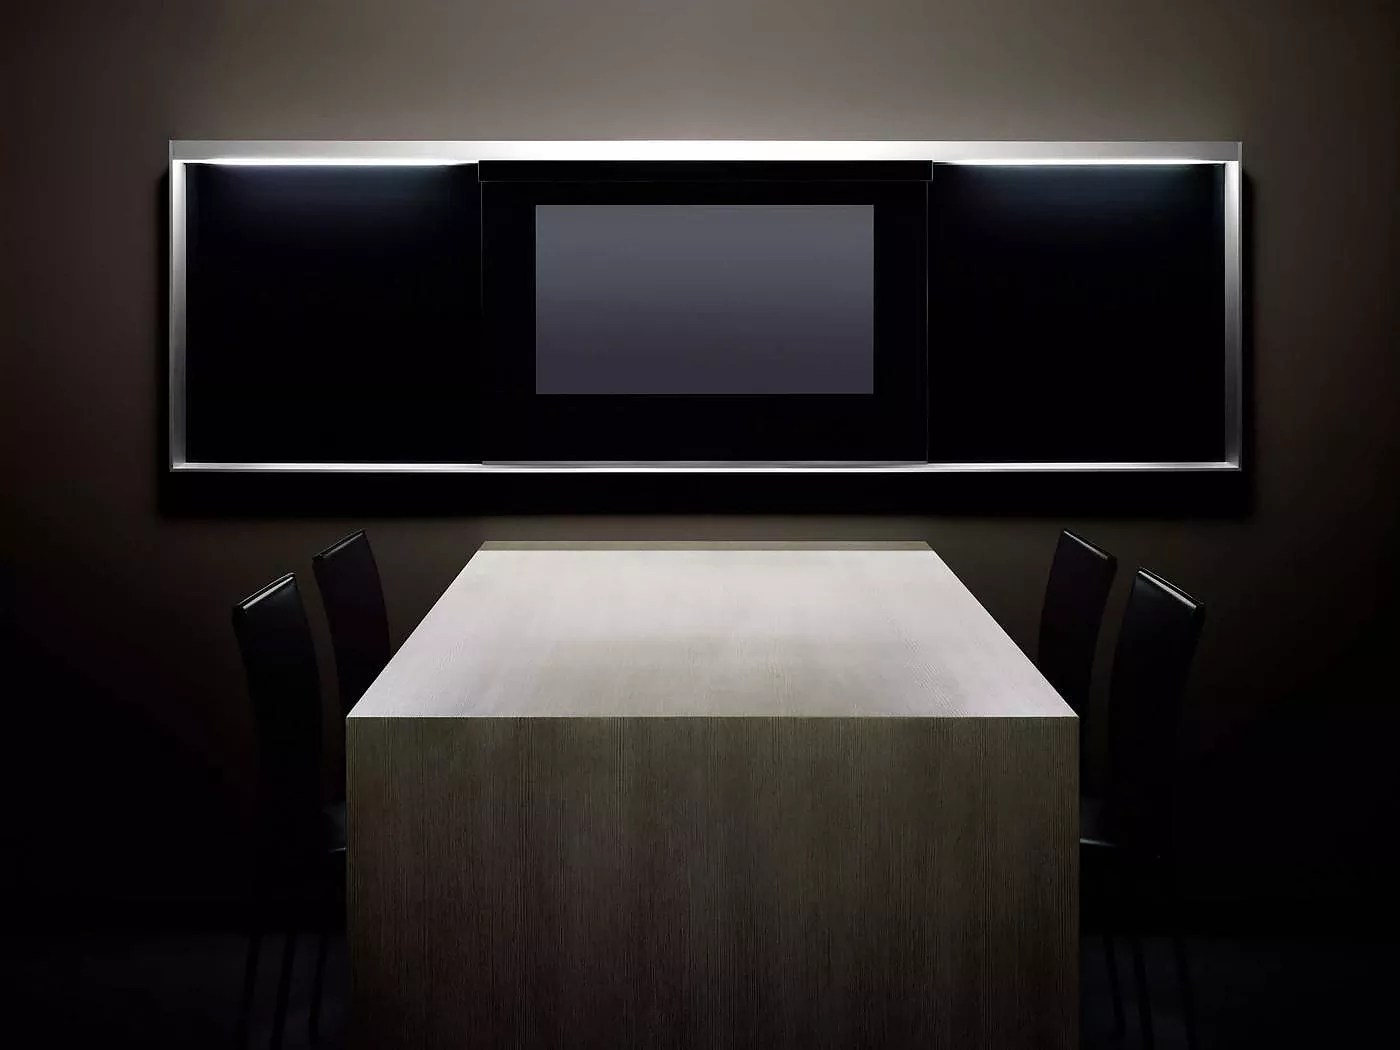 Porsche Design-küche P7340 Poggenpohl Porsche Design Kitchen P7340 Design Is This